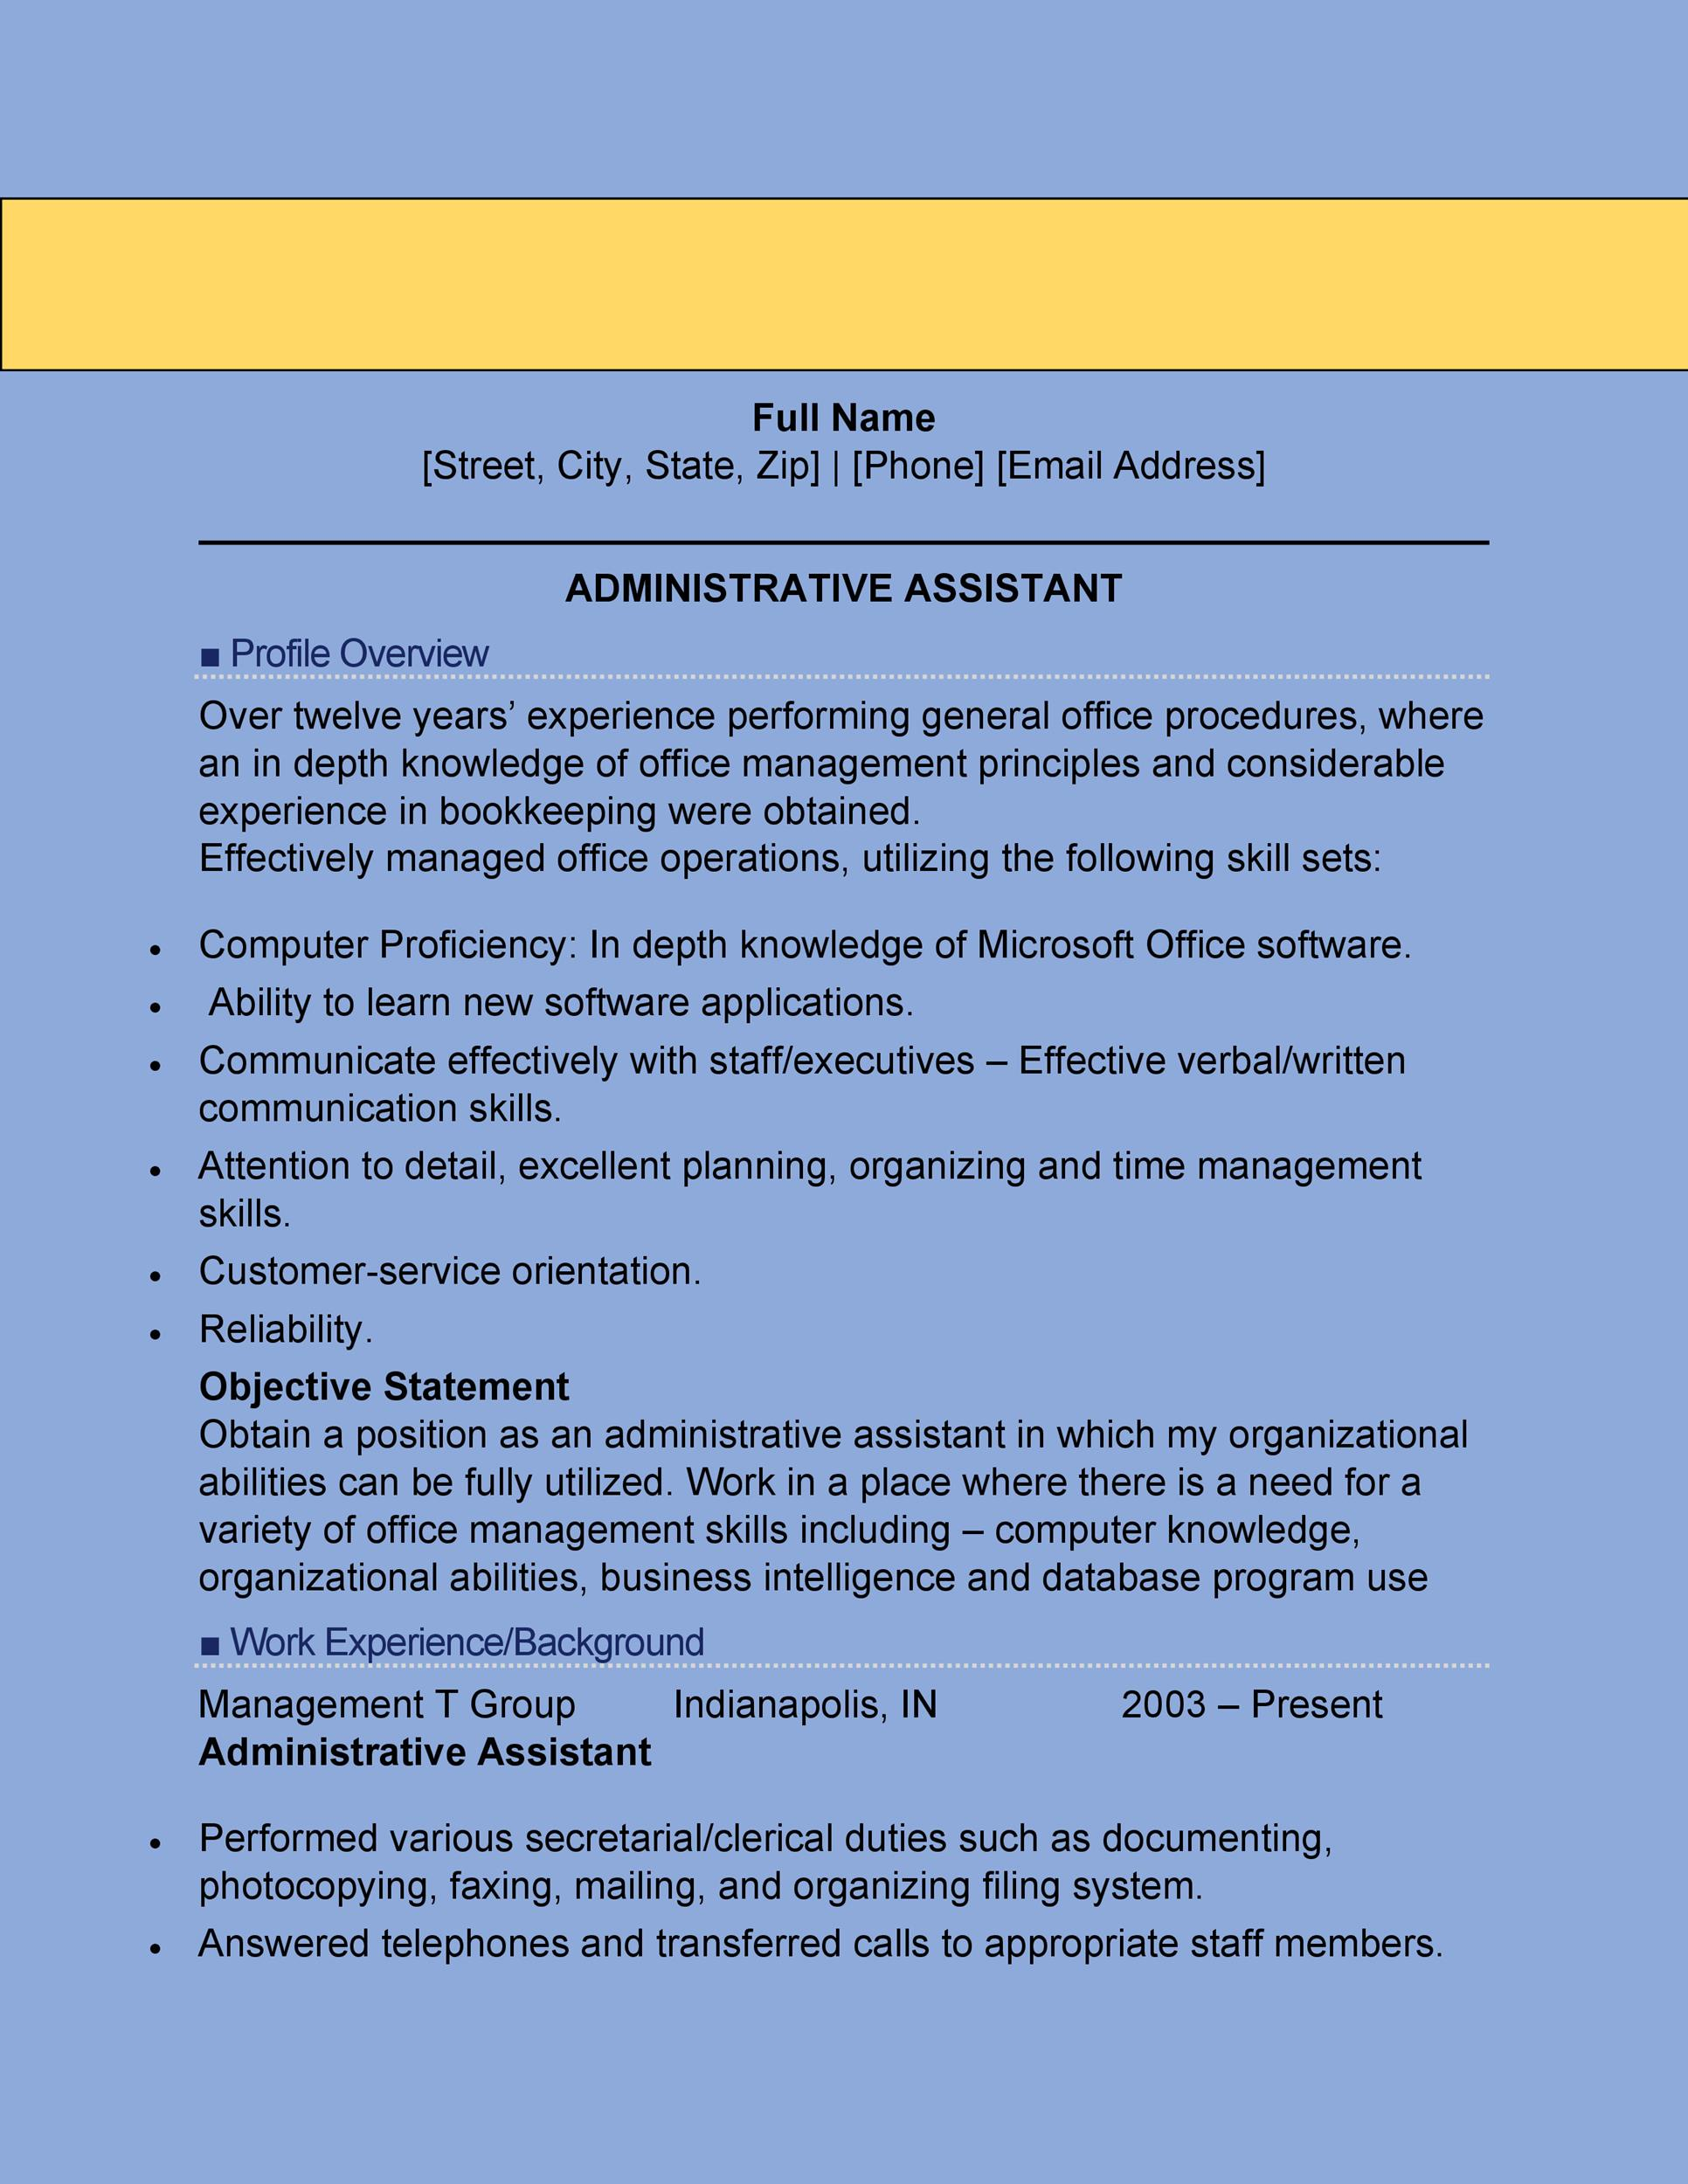 20+ Free Administrative Assistant Resume Samples - Template Lab - resume templates for administrative assistant